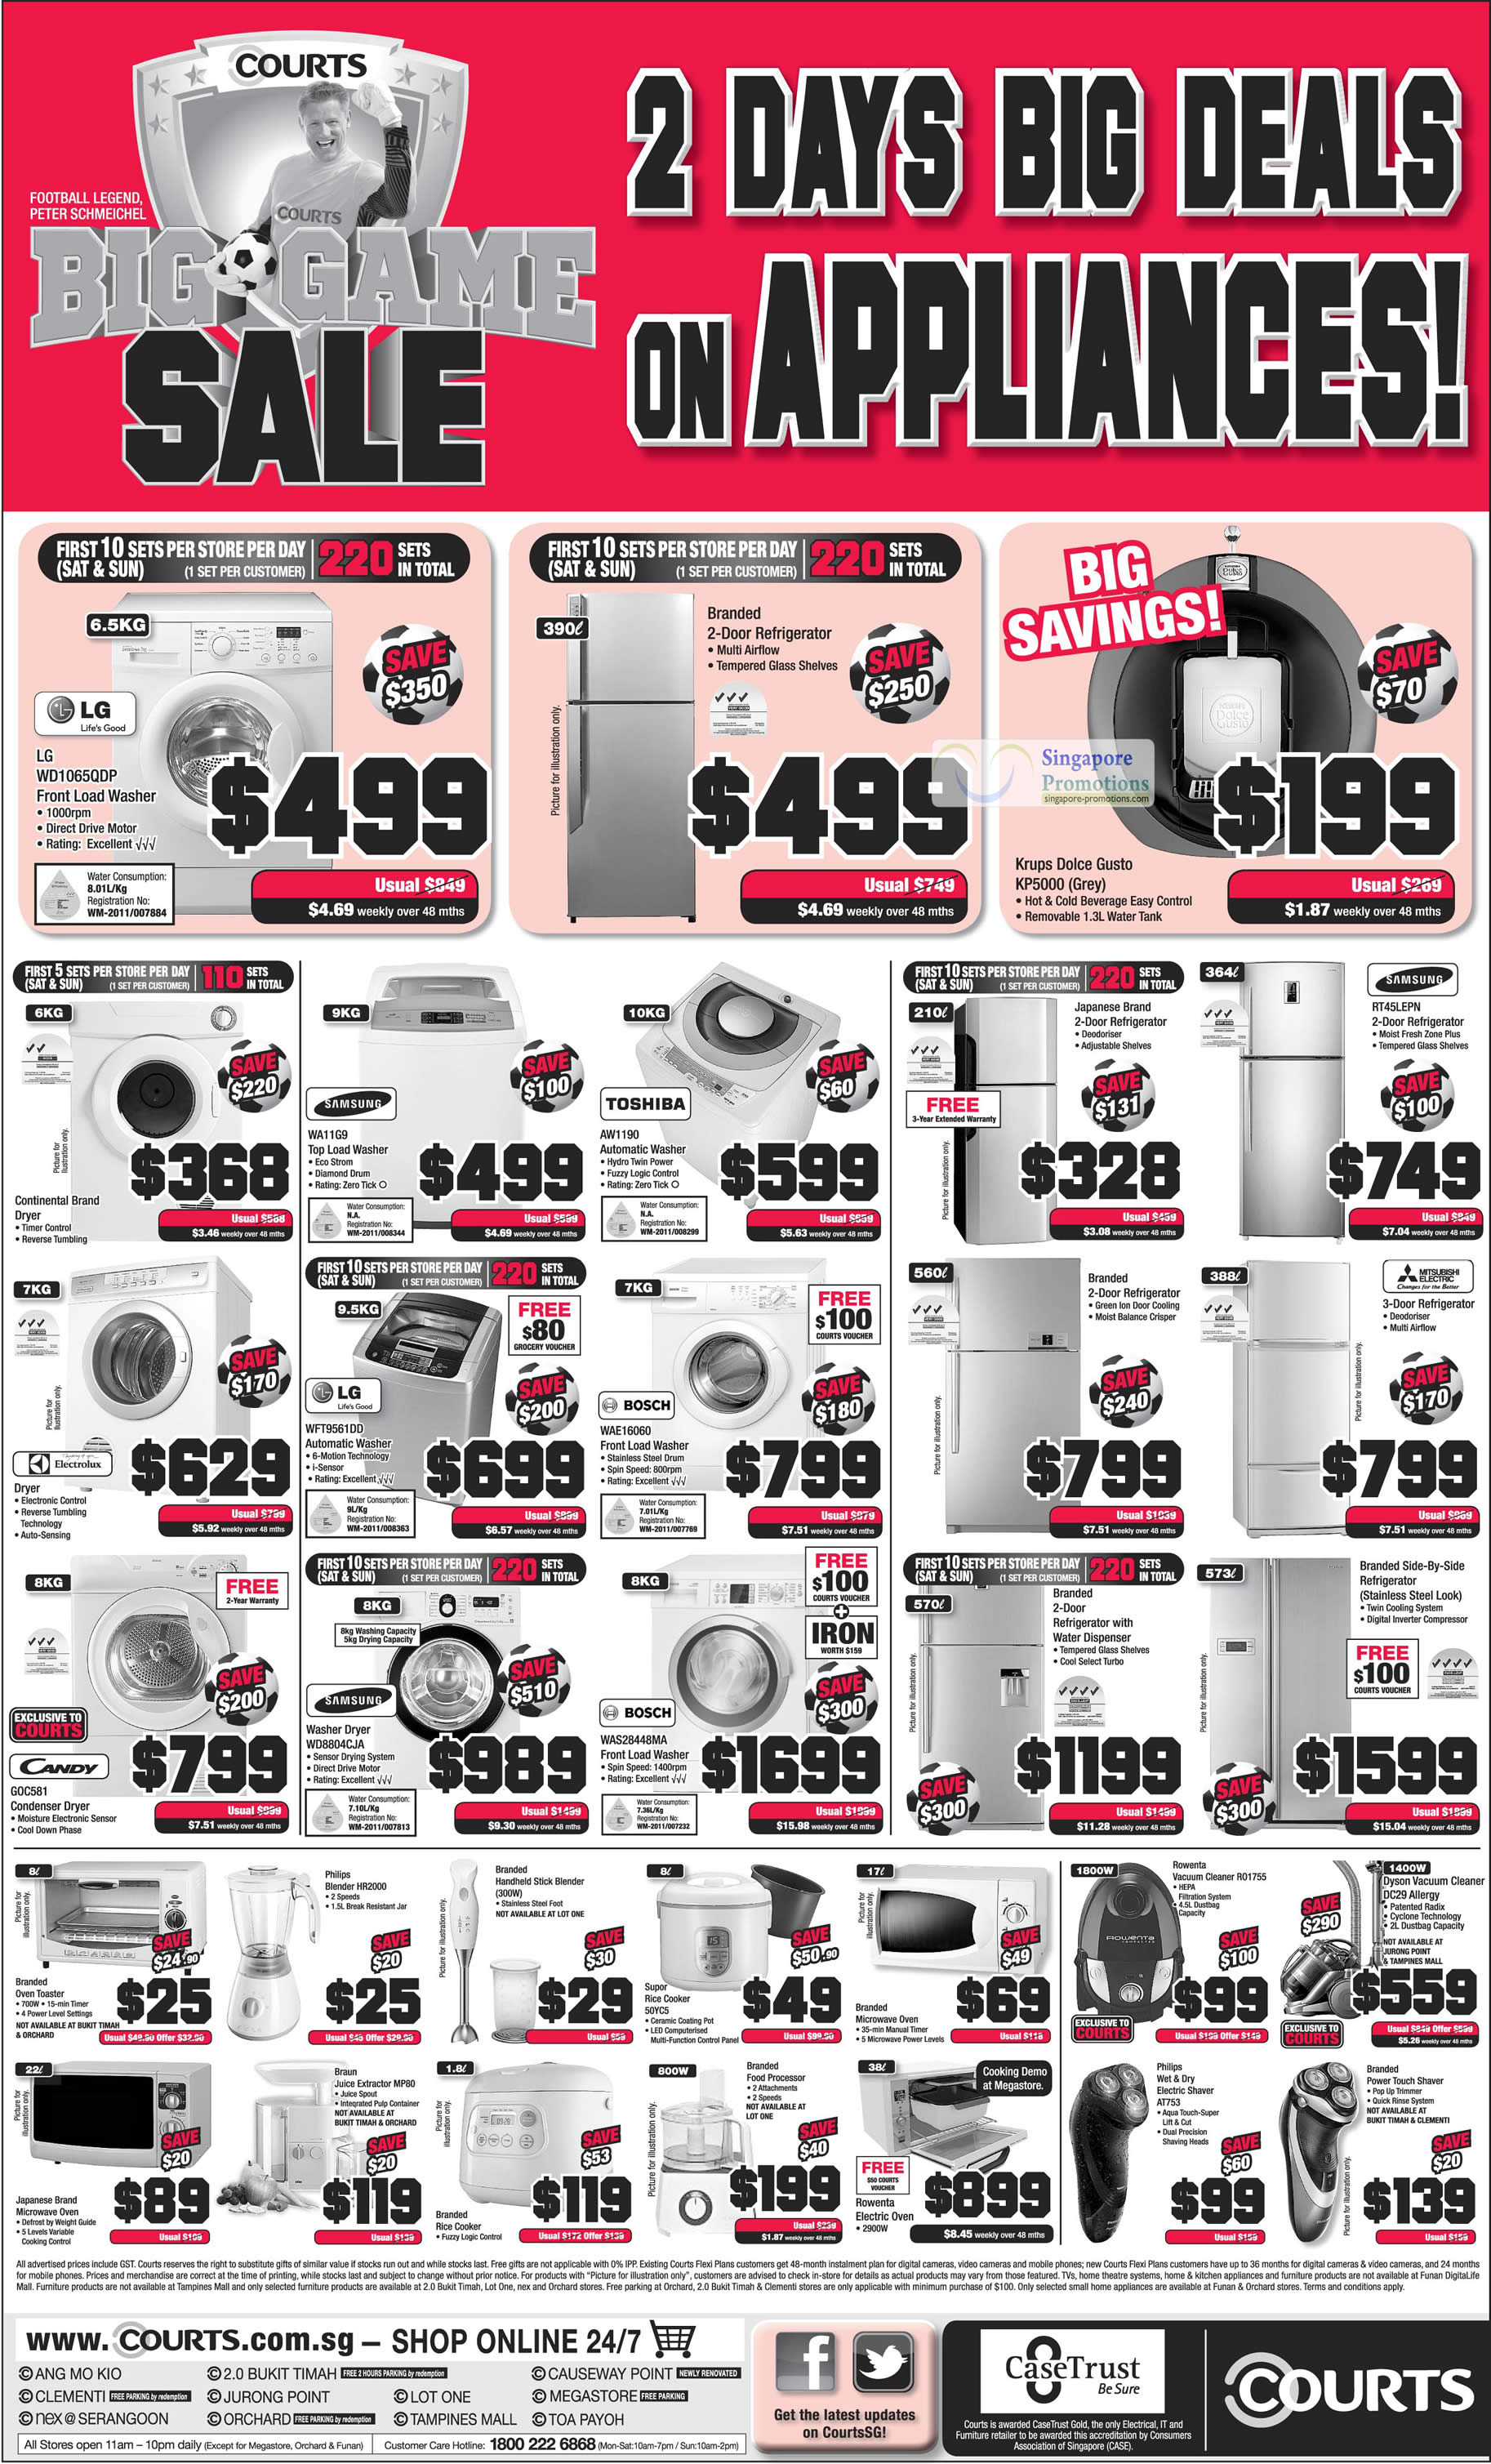 Washers, Fridges, Vacuum Cleaner, LG, Toshiba, Samsung, Bosch, Candy, Electrolux